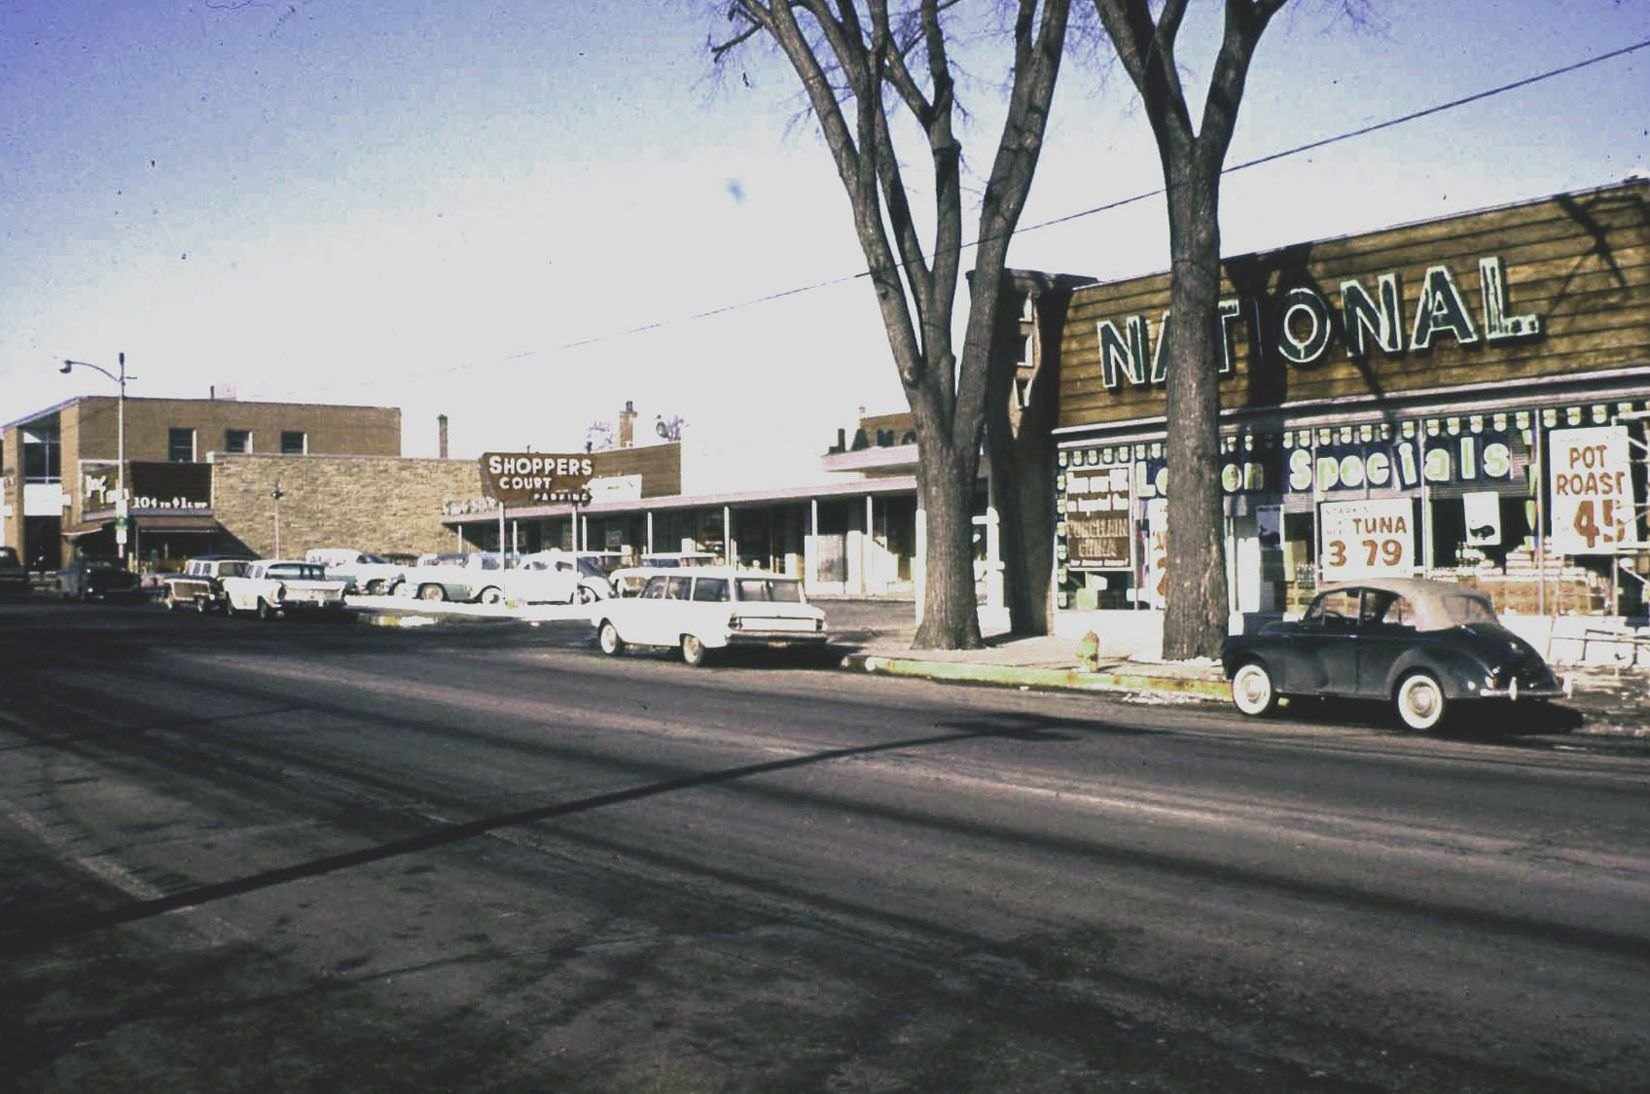 Deerfield Il Shoppers Court In The 1960s Included The Deerfield State Bank And The National Tea Store Featurin Chicago Pictures Deerfield Historical Society